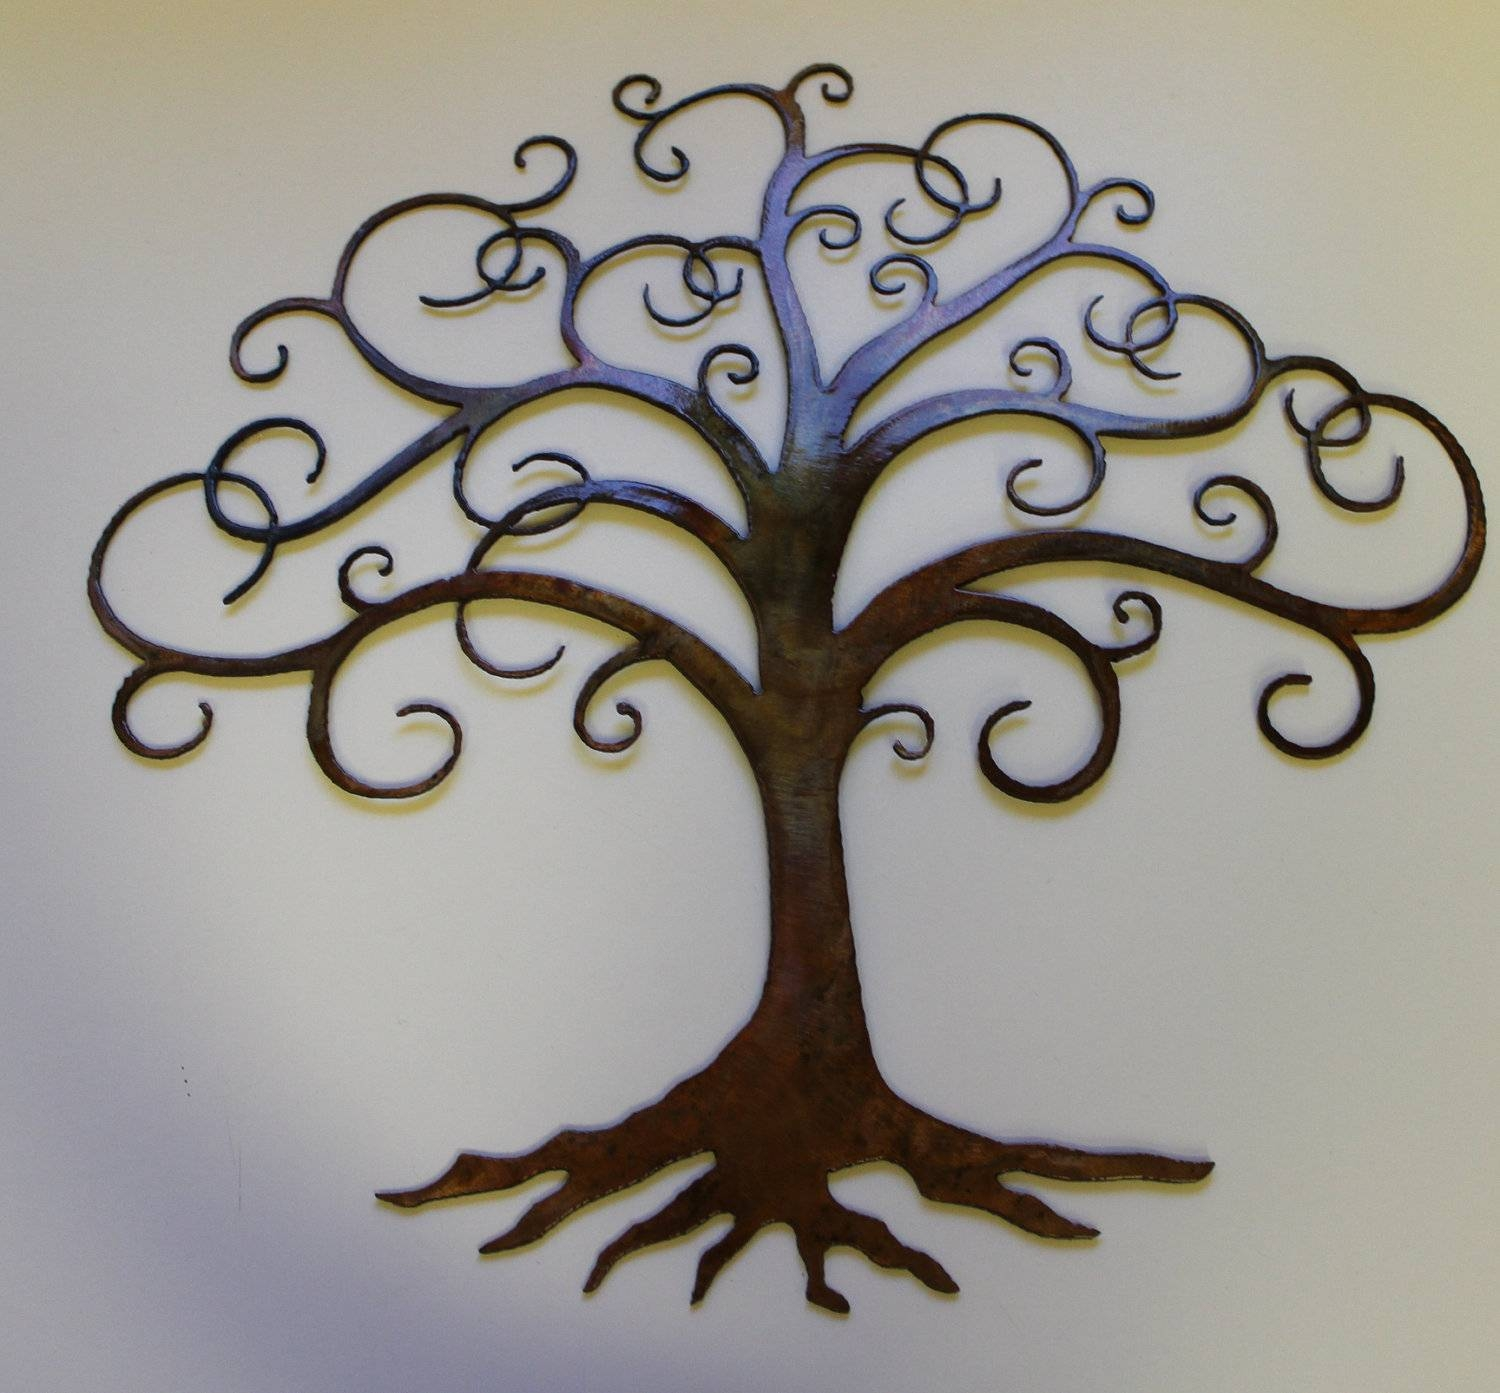 Wall Art Designs: Metal Wall Art Trees Breathtaking Large Metal Throughout Best And Newest Metal Wall Art Tree (View 15 of 20)